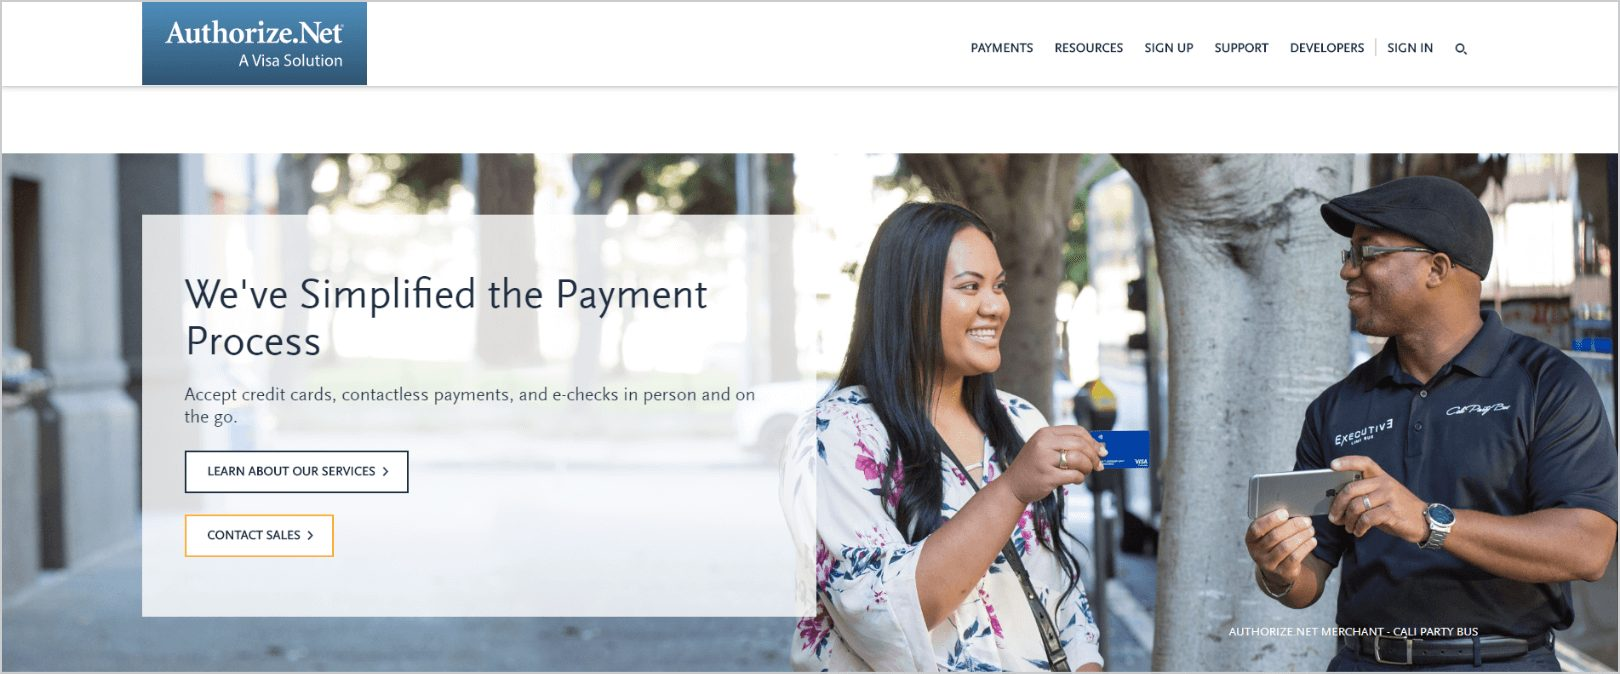 Authorize Net home page